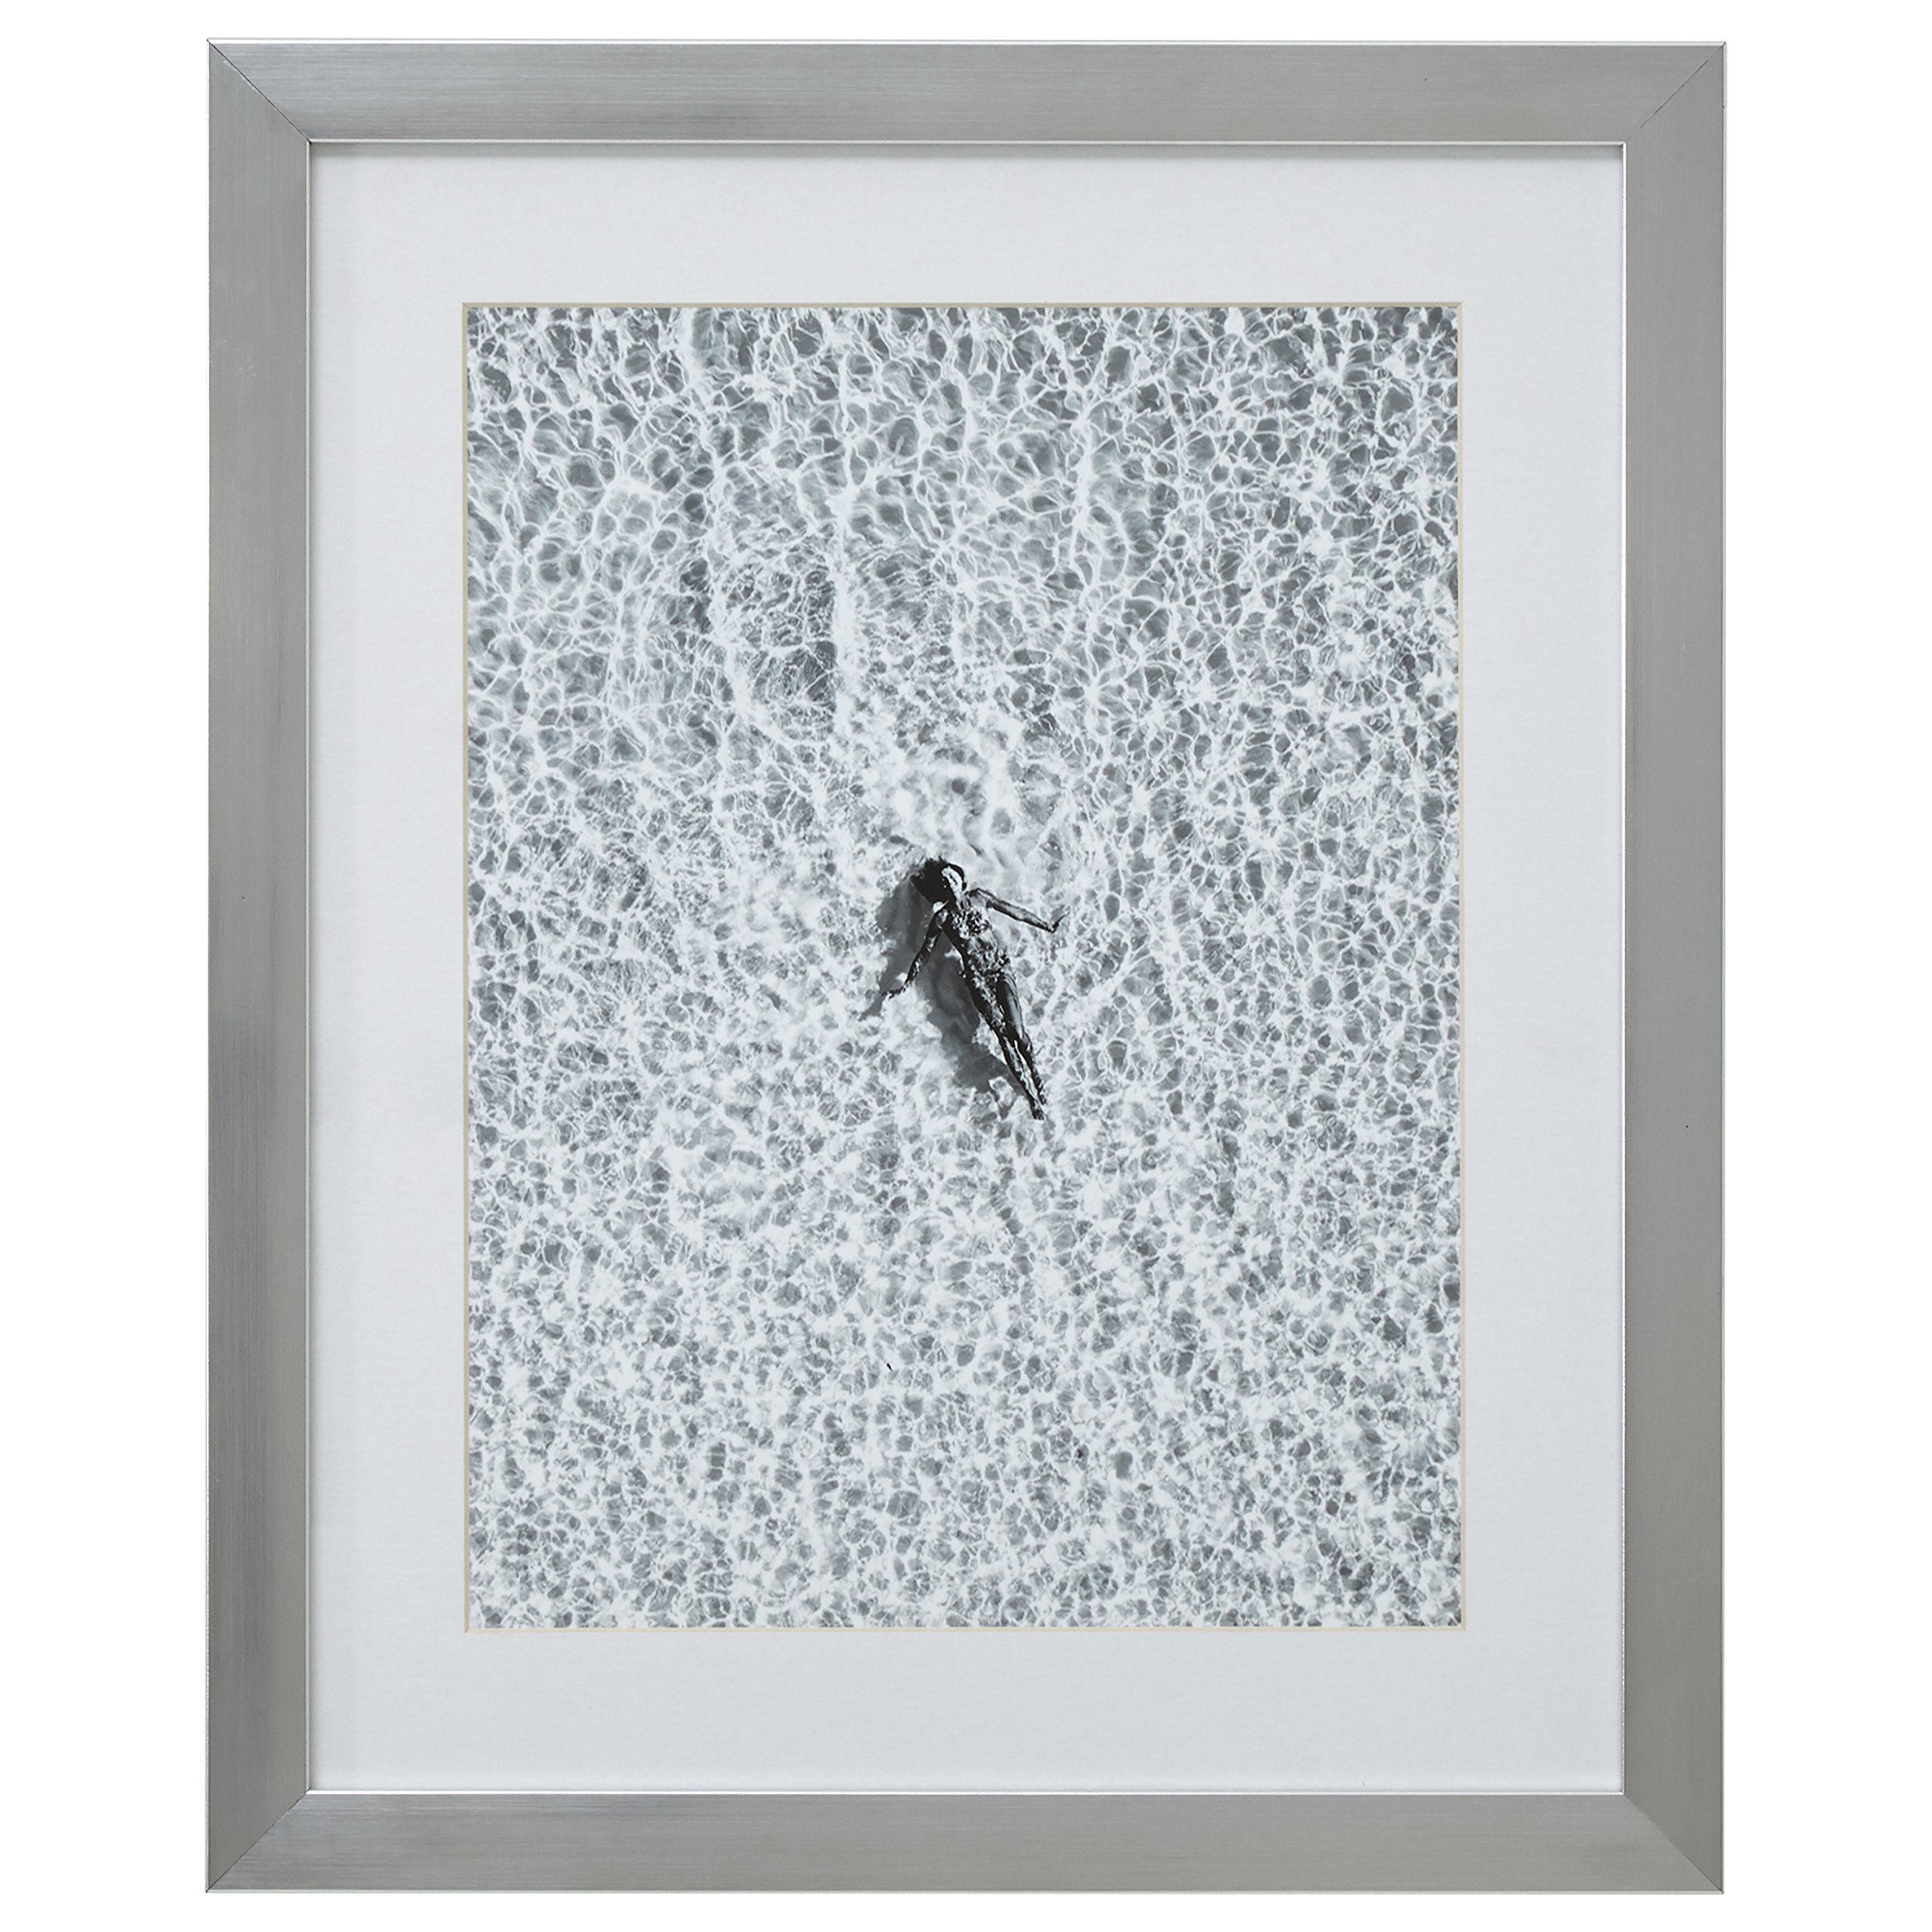 Modern Black and White Floating Woman, Silver Frame, 18'' x 22''